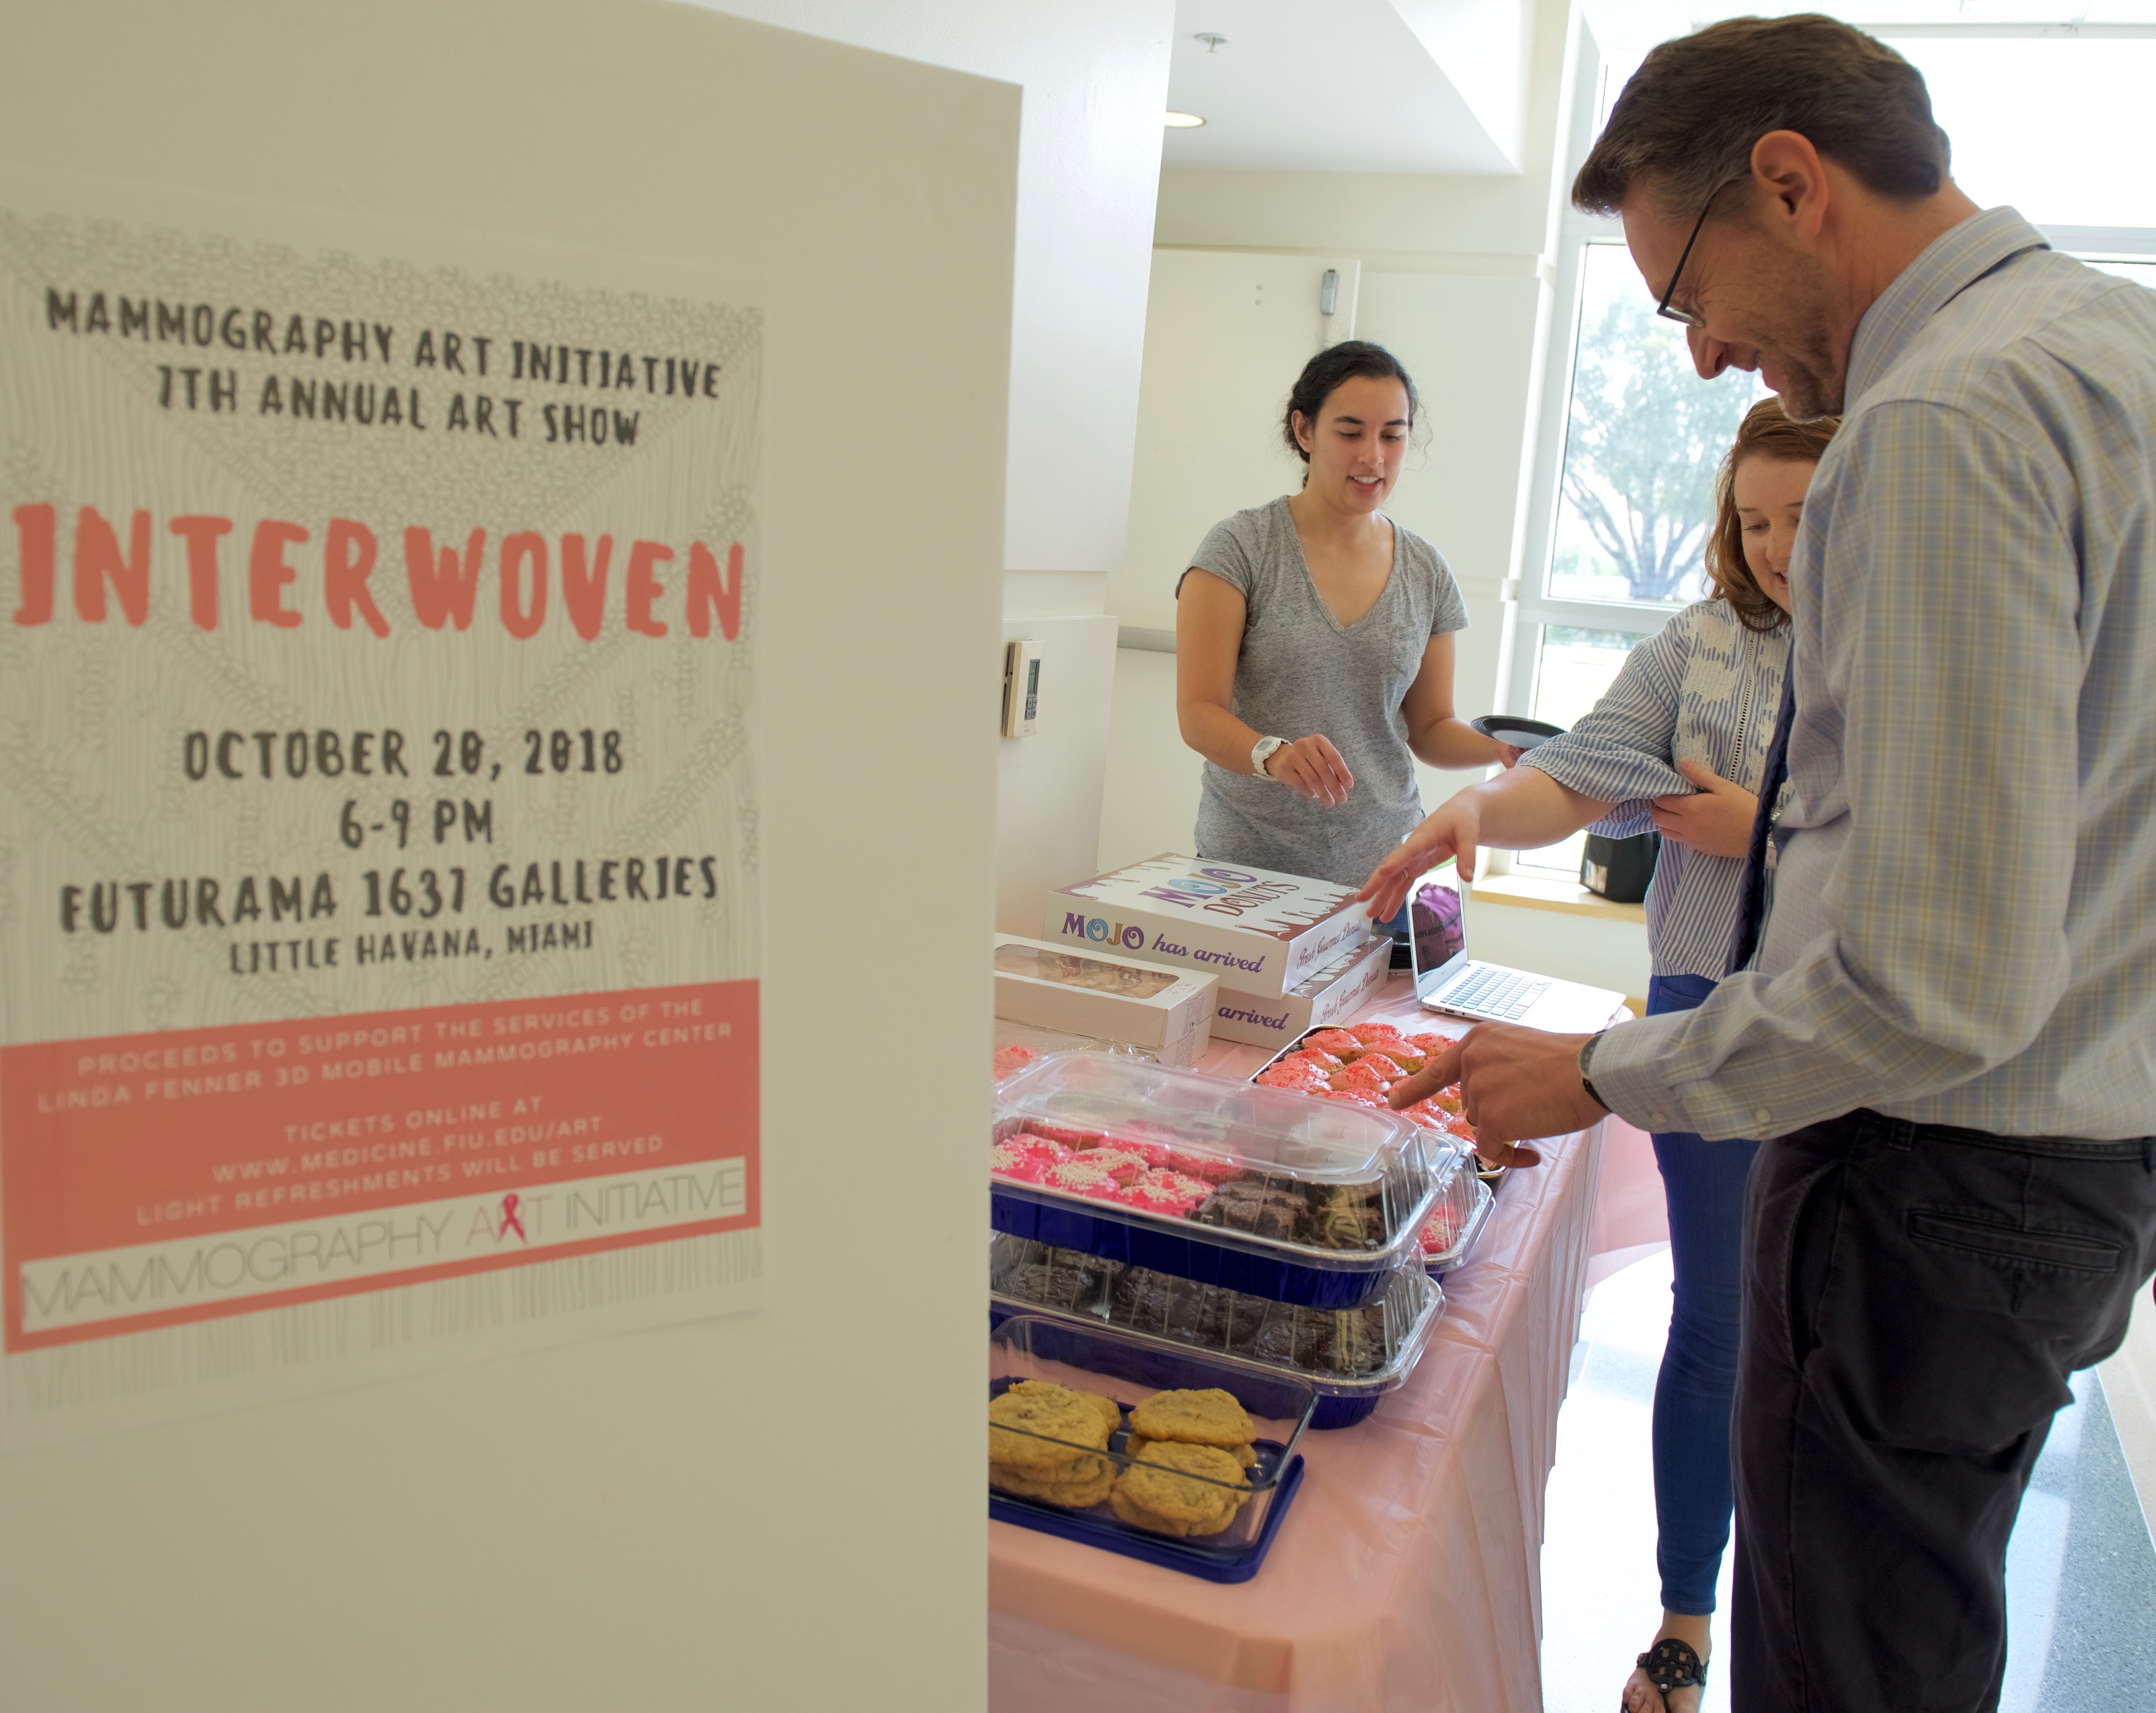 Dr. Gregory Schneider decides he'll take a cupcake at a bake sale where HWCOM students are also raising funds for the Mammography Art Initiative.